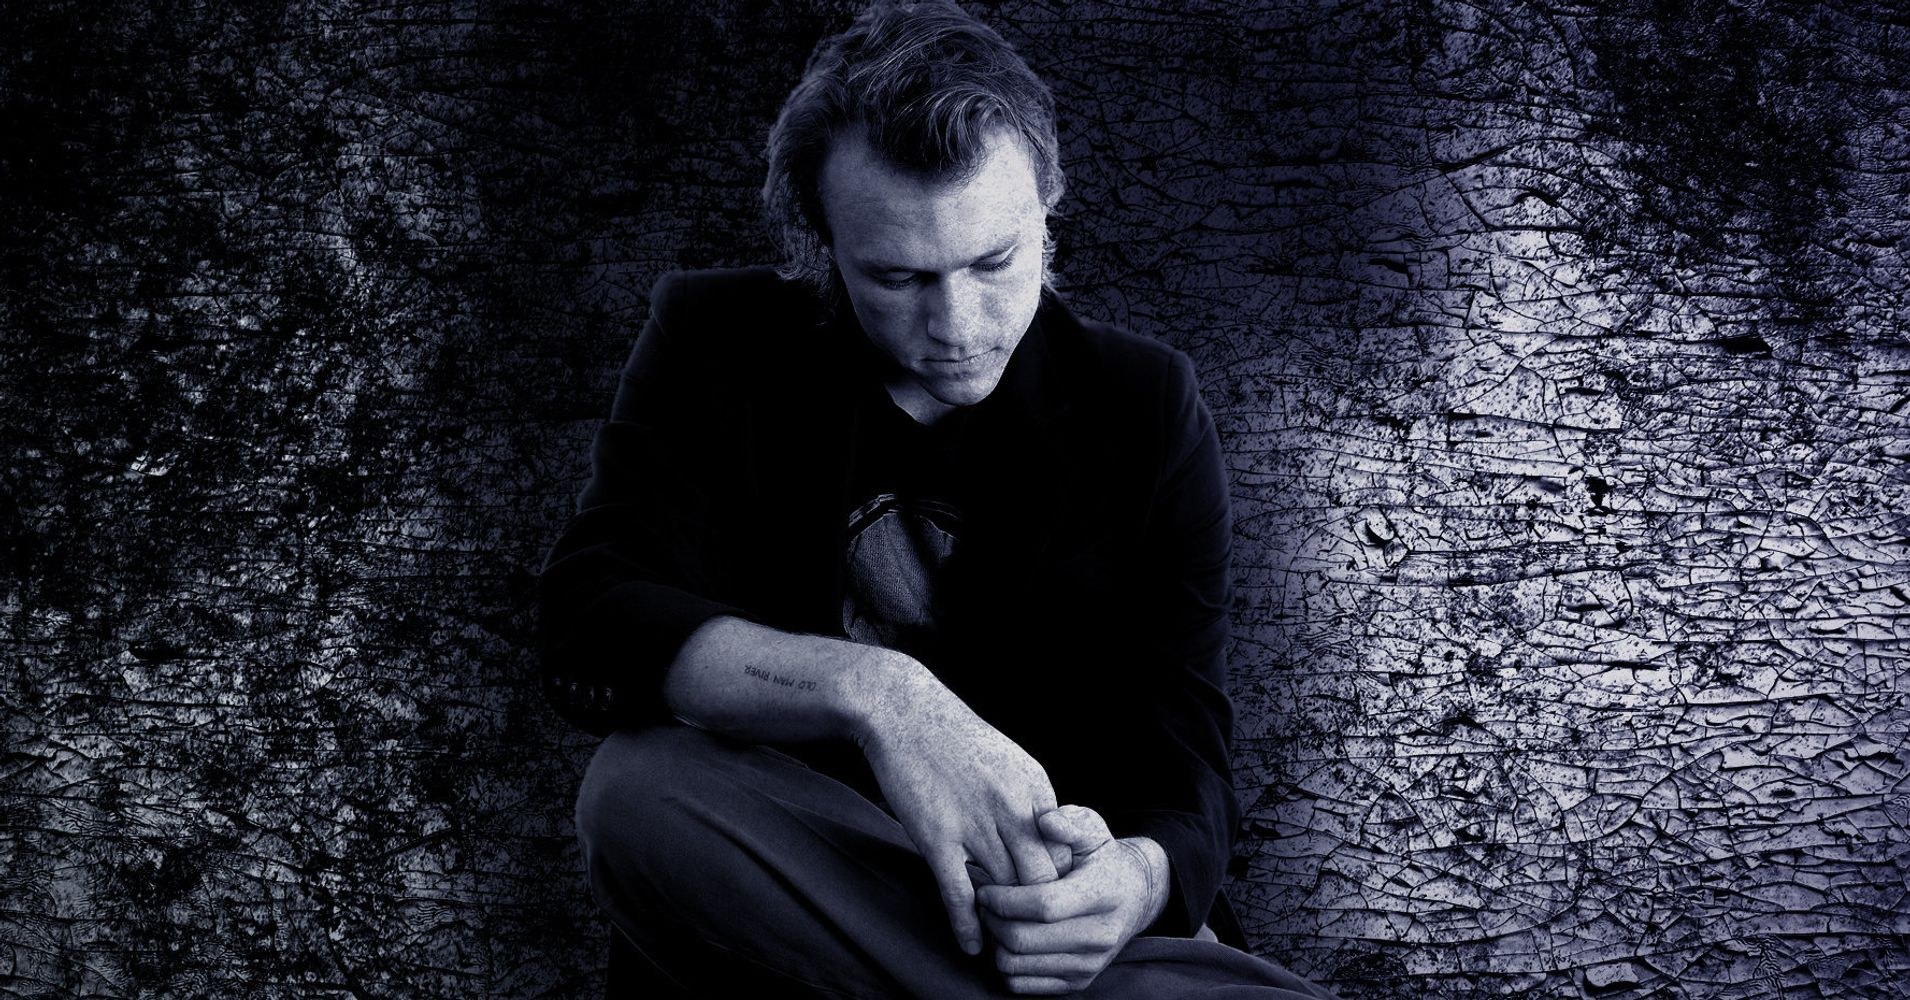 10 Years After Heath Ledger's Death, The Opioid Epidemic Rages On